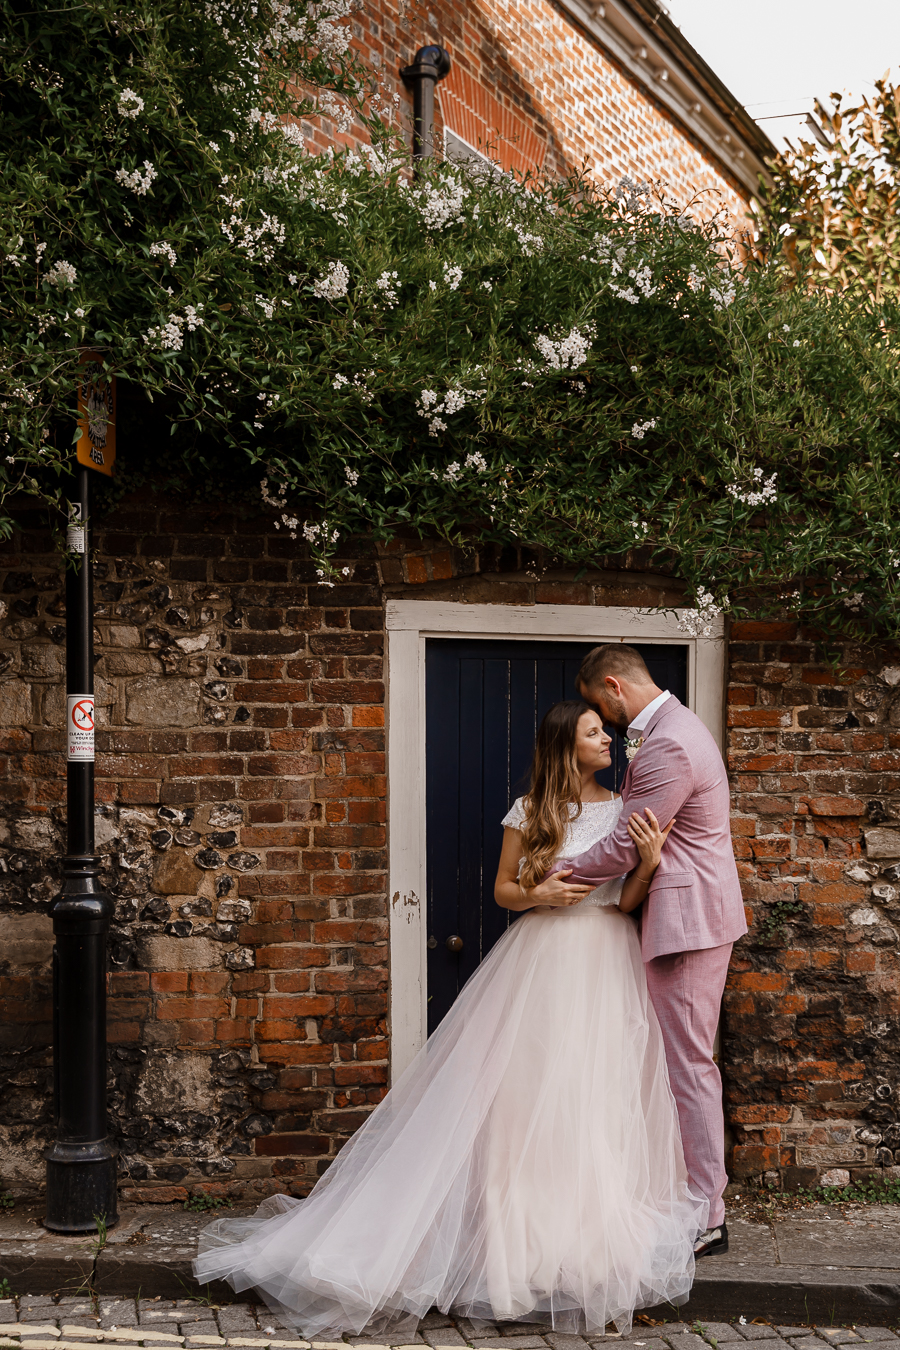 A loved-up Winchester city elopement - with adorable dogs! Photographer credit Katherine and her Camera (46)